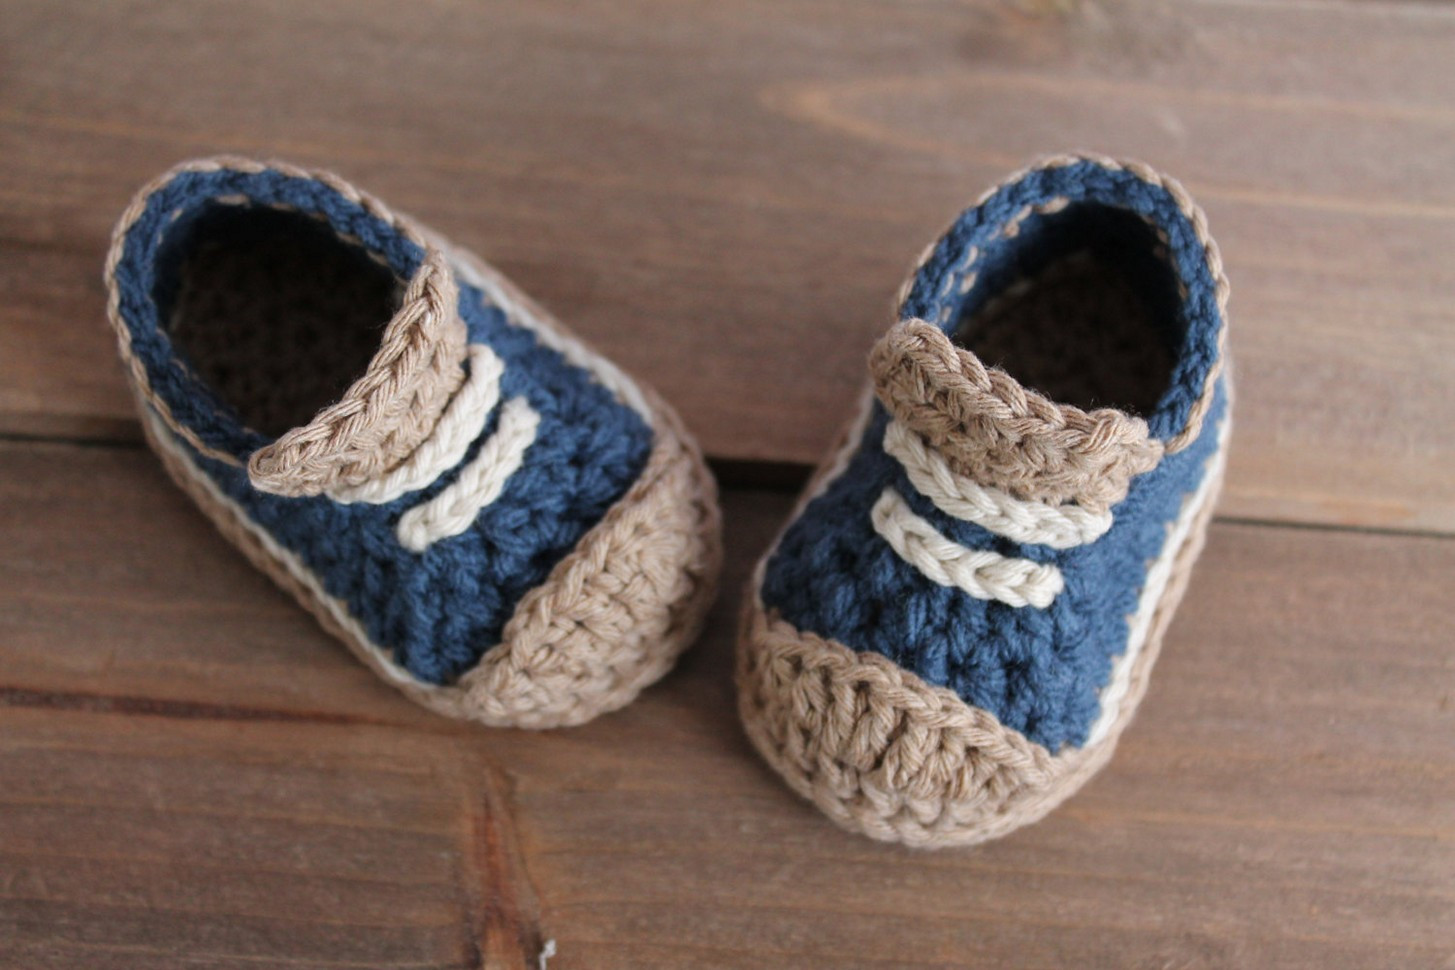 Baby Boy Crochet Patterns Inspirational Baby Crochet Sandals Several Pieces Of Ideas You Can Try Of Awesome 41 Models Baby Boy Crochet Patterns